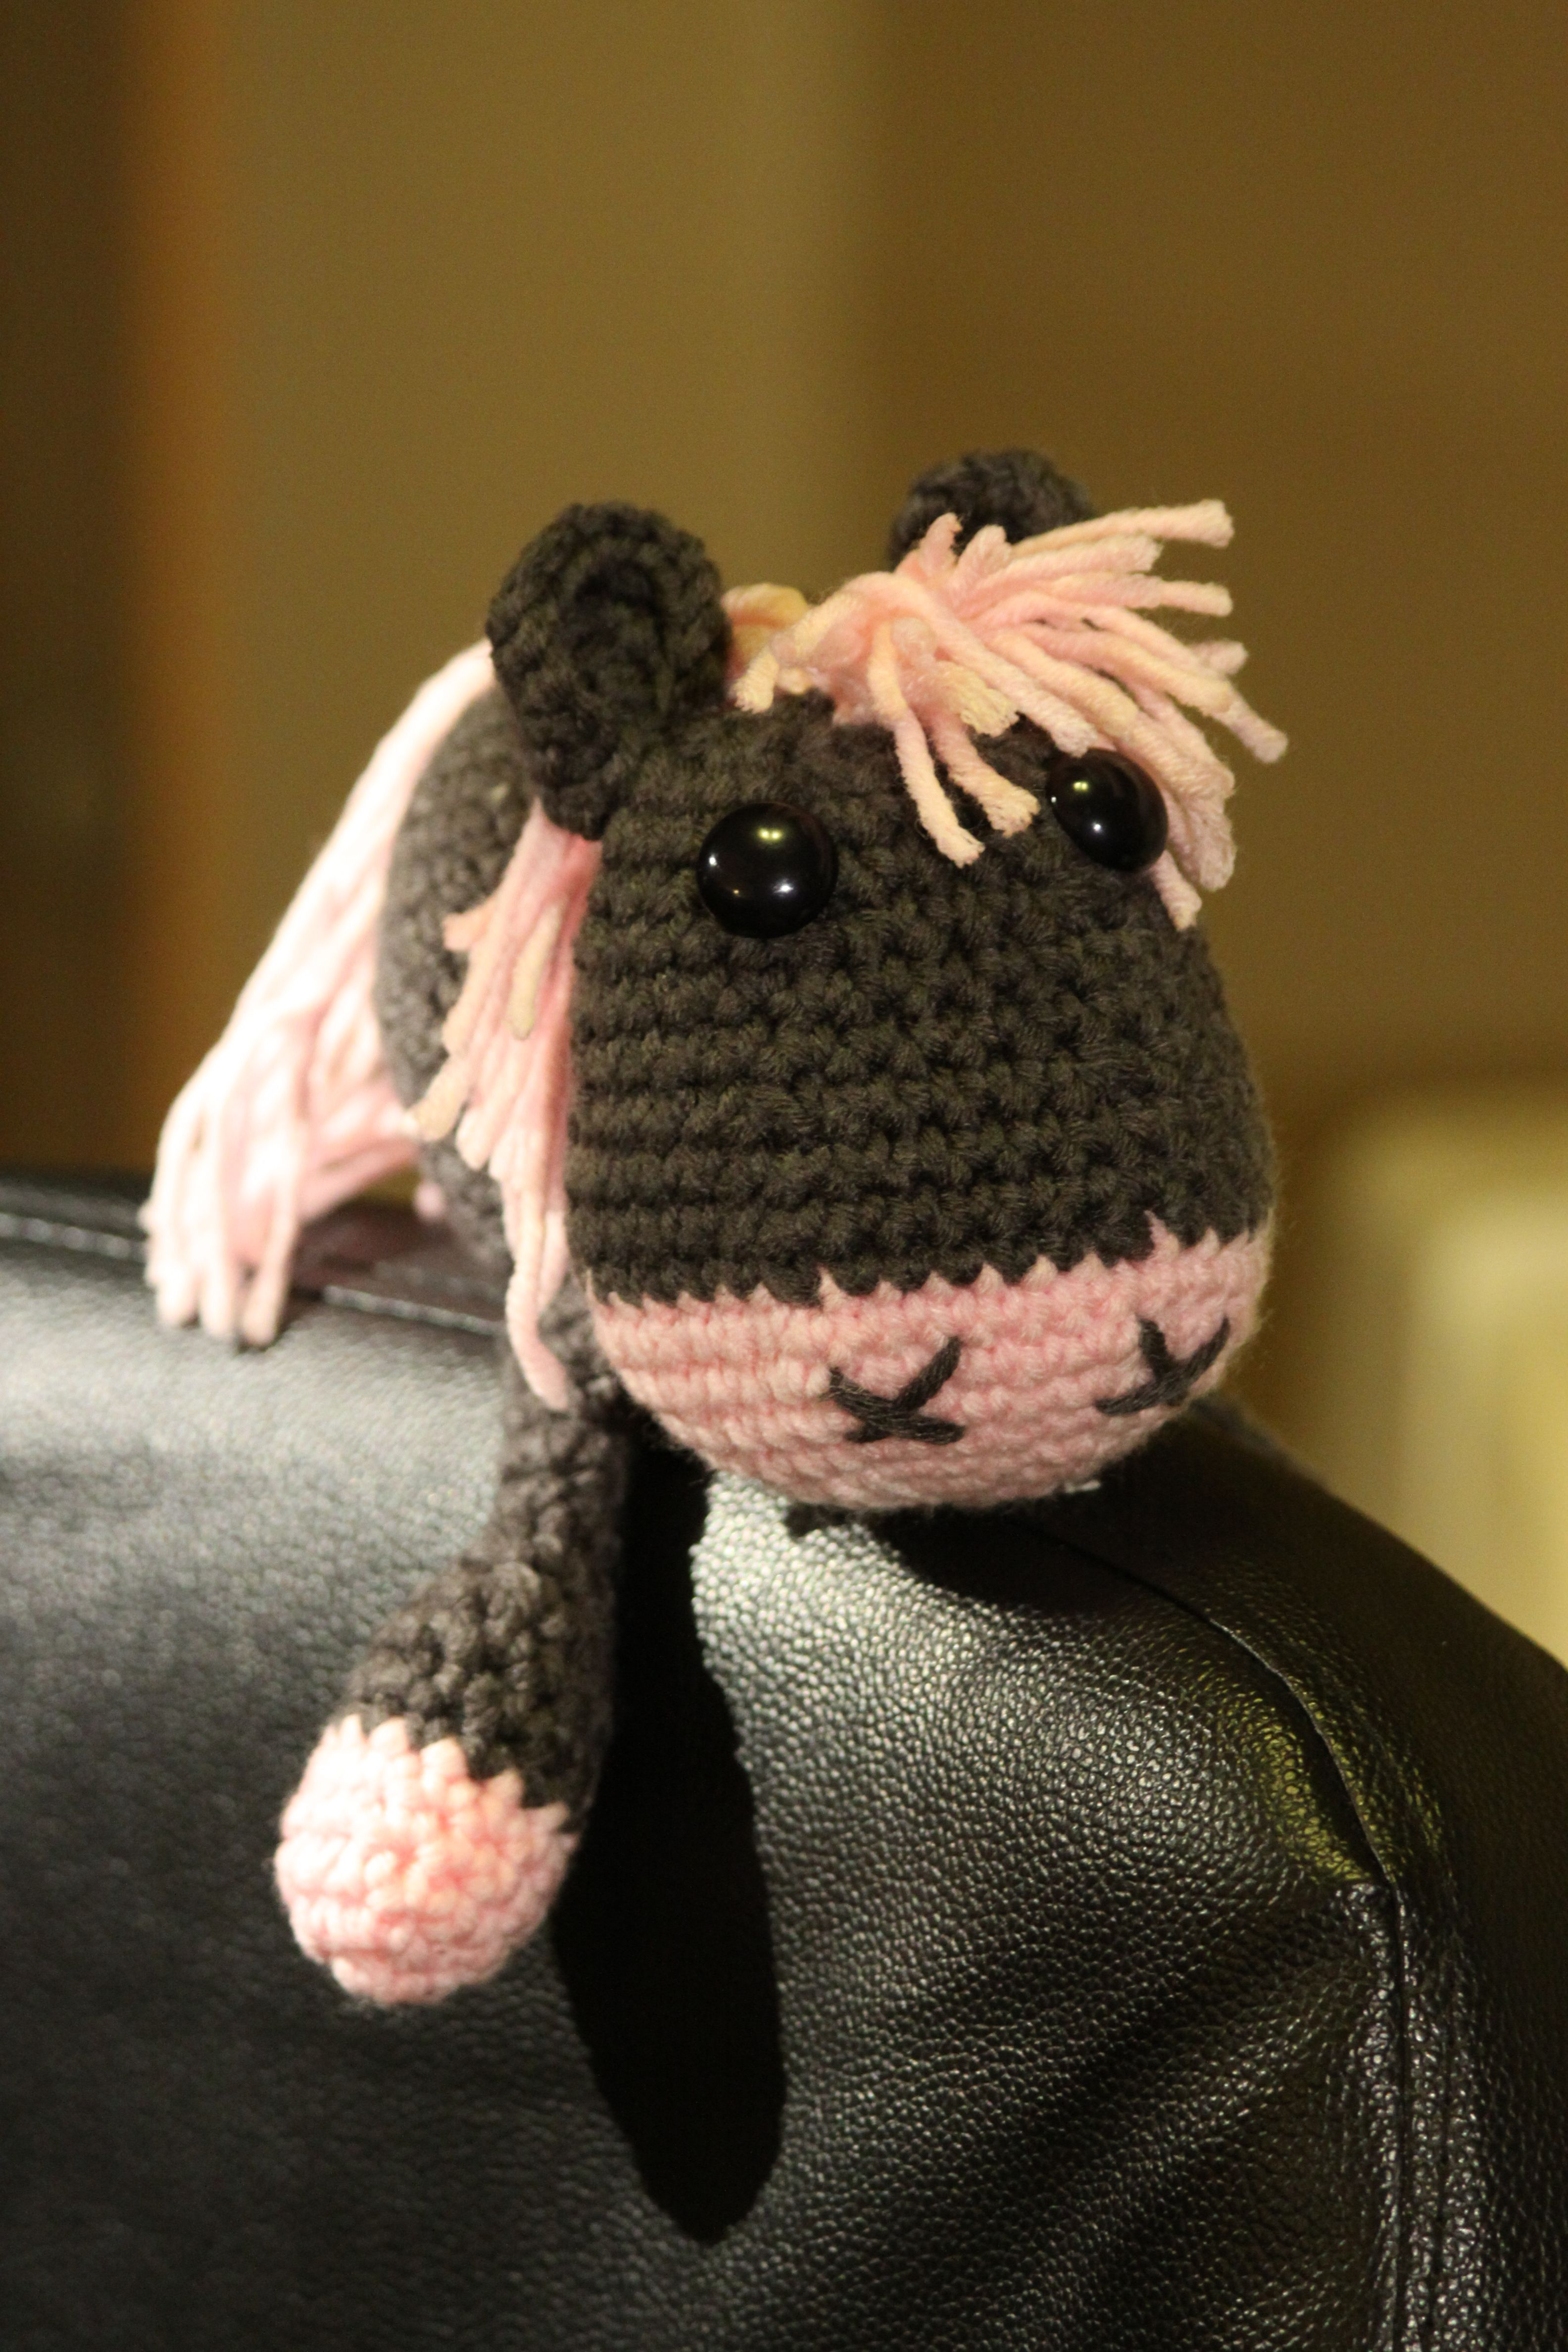 My own crocheted pony. Hind legs not done yet, but i cant resist this little cutie!